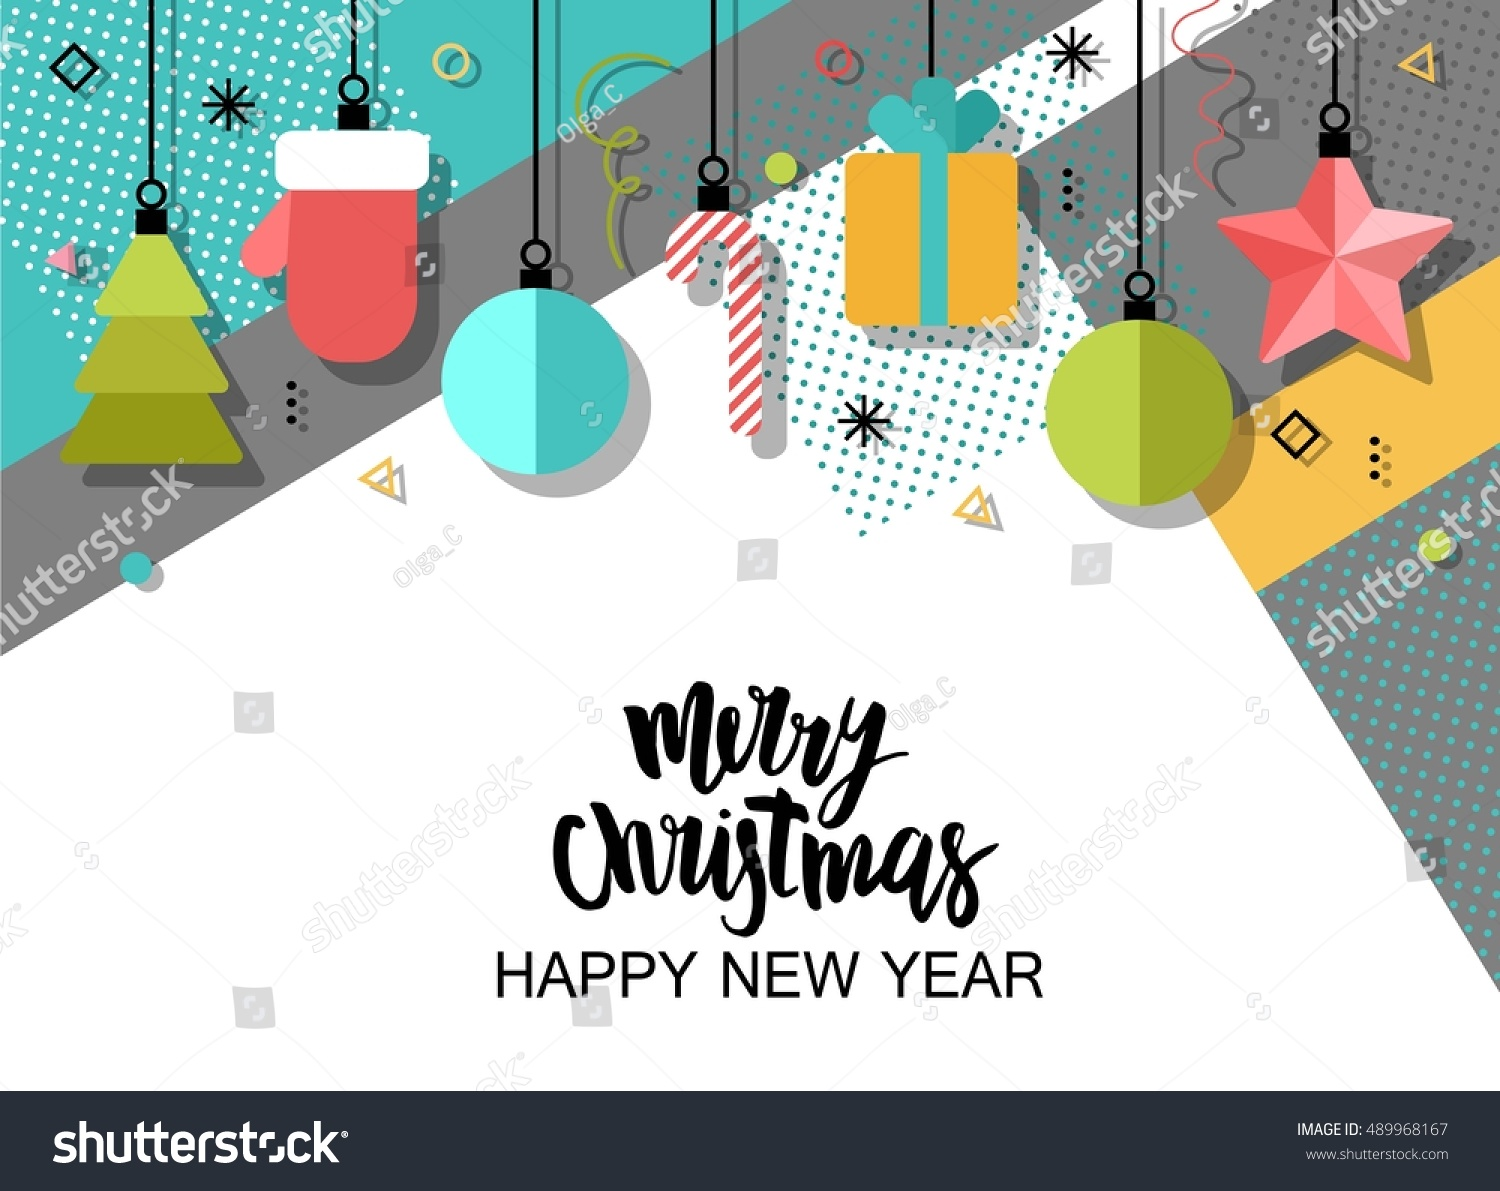 Merry christmas new year flat design stock vector 489968167 merry christmas new year flat design stock vector 489968167 shutterstock stopboris Gallery